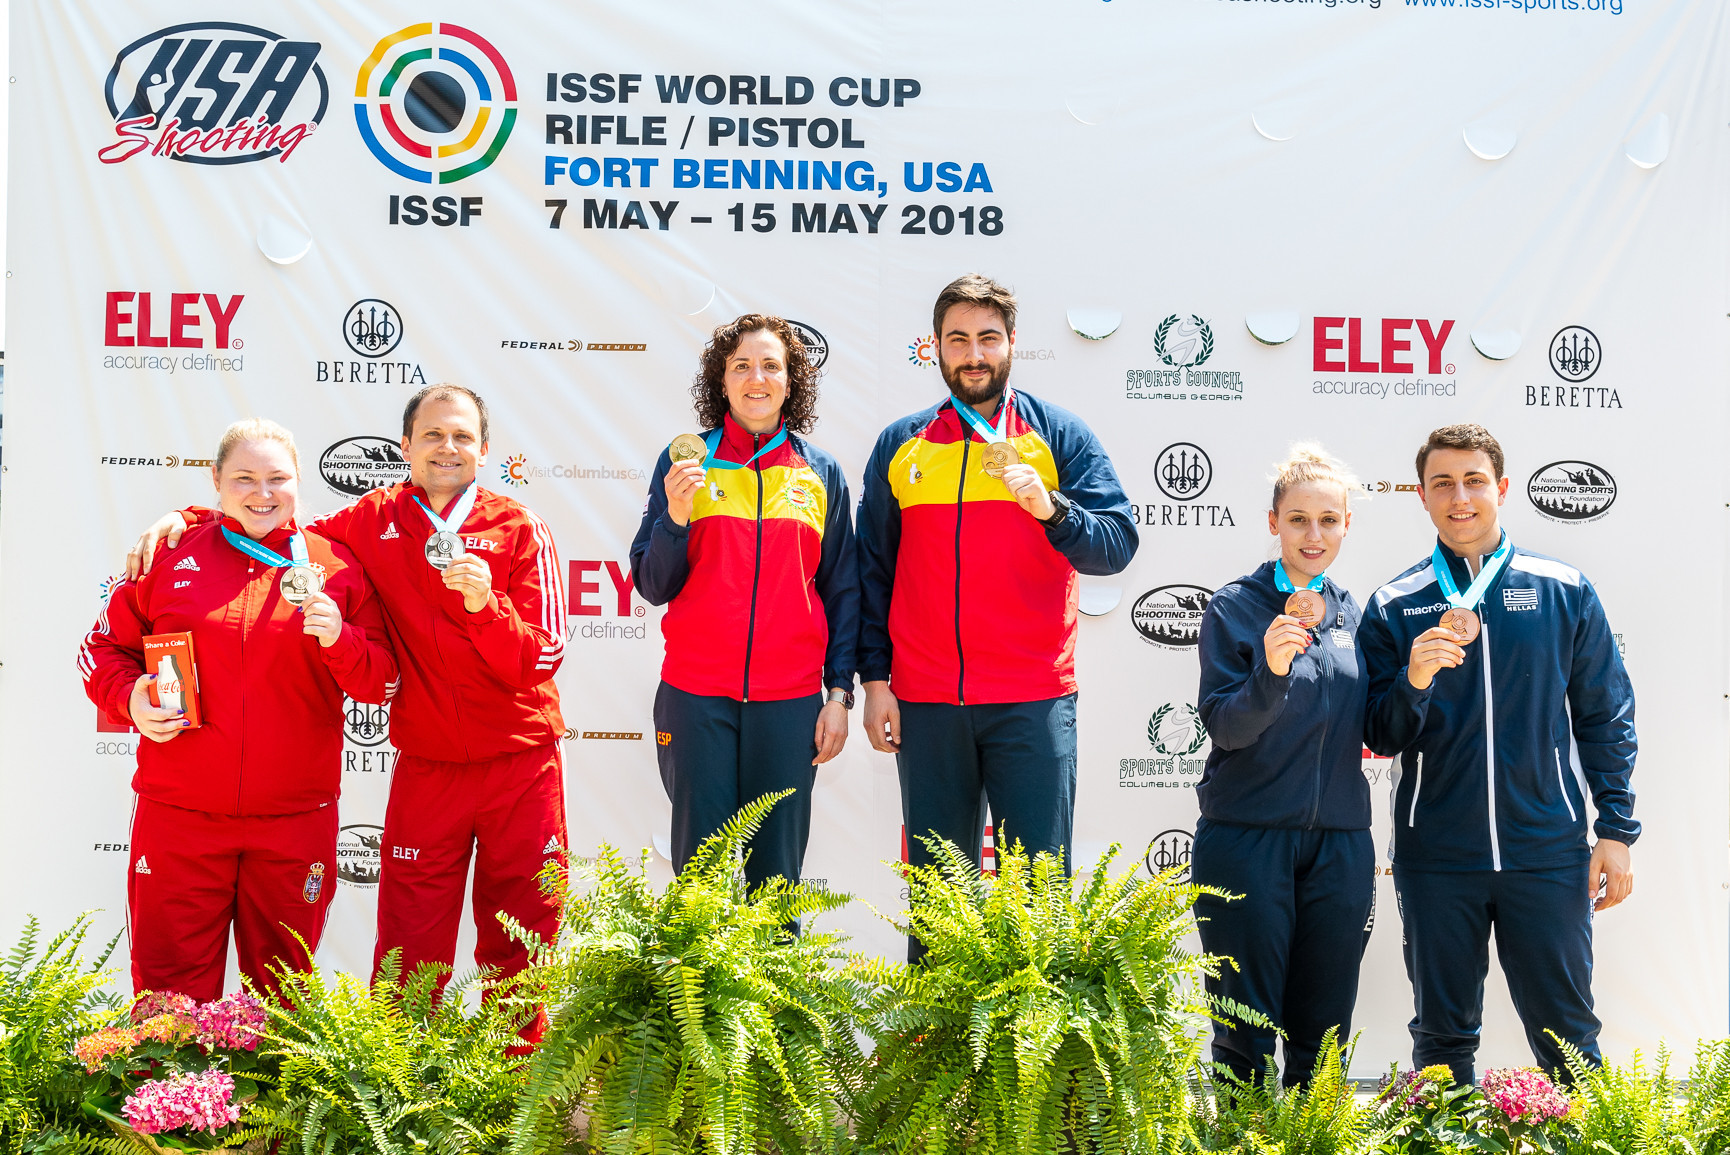 Spain also clinched a final day title in Fort Benning ©ISSF